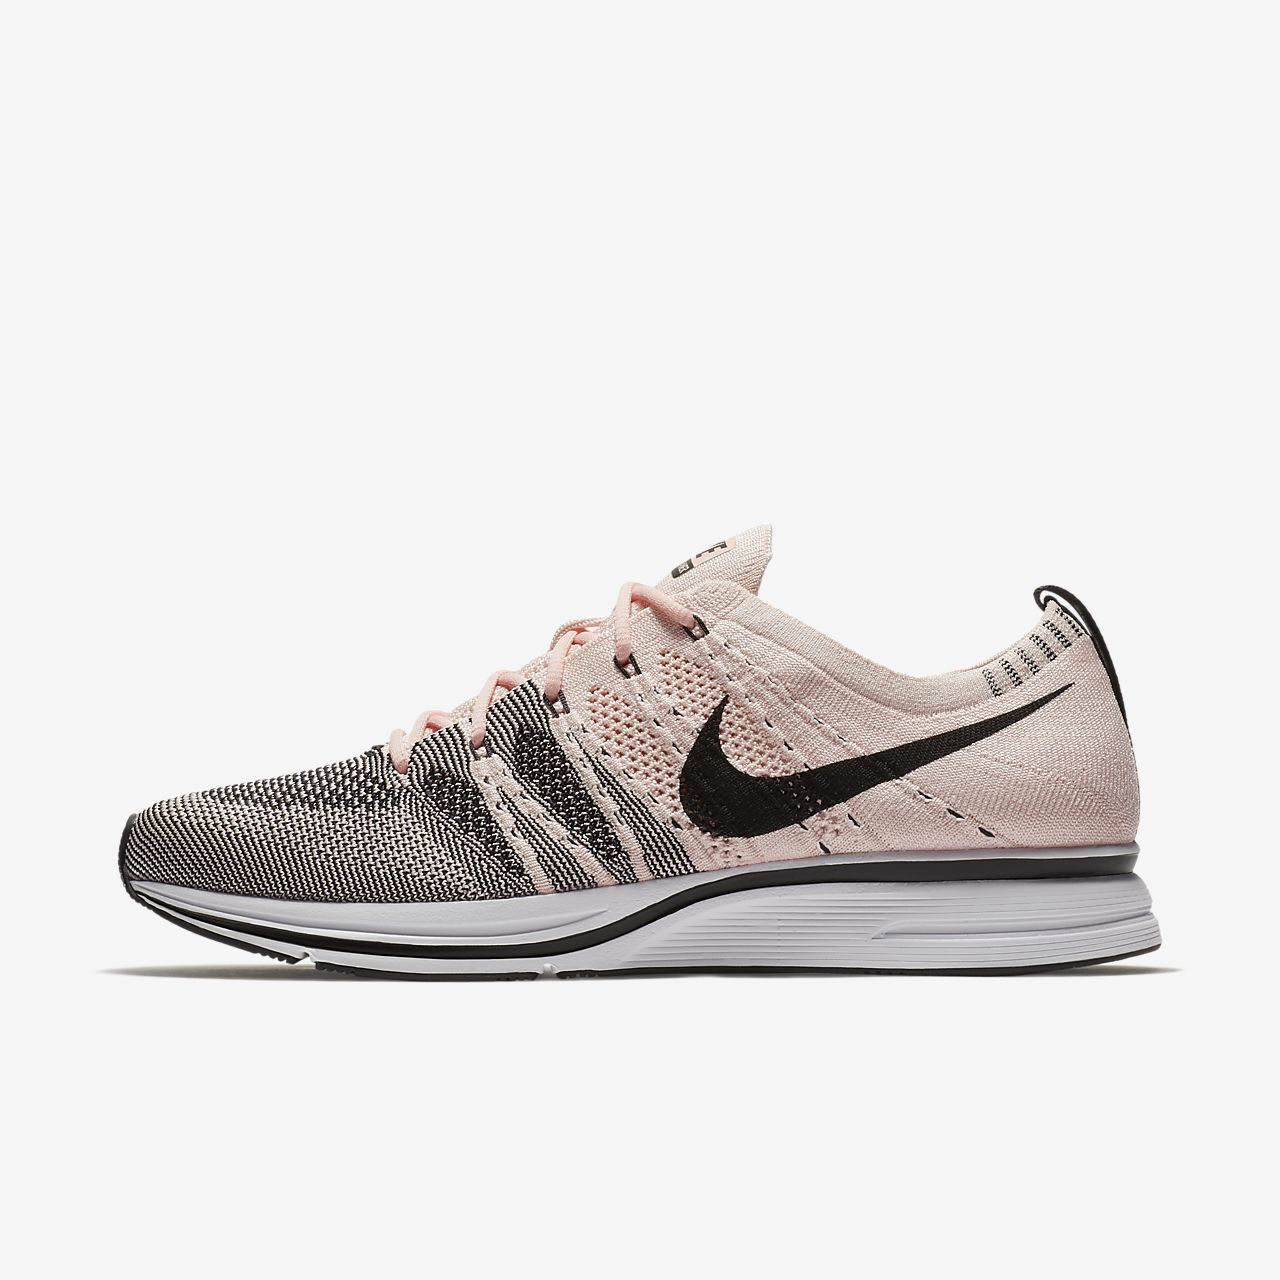 ... Chaussure mixte Nike Flyknit Trainer